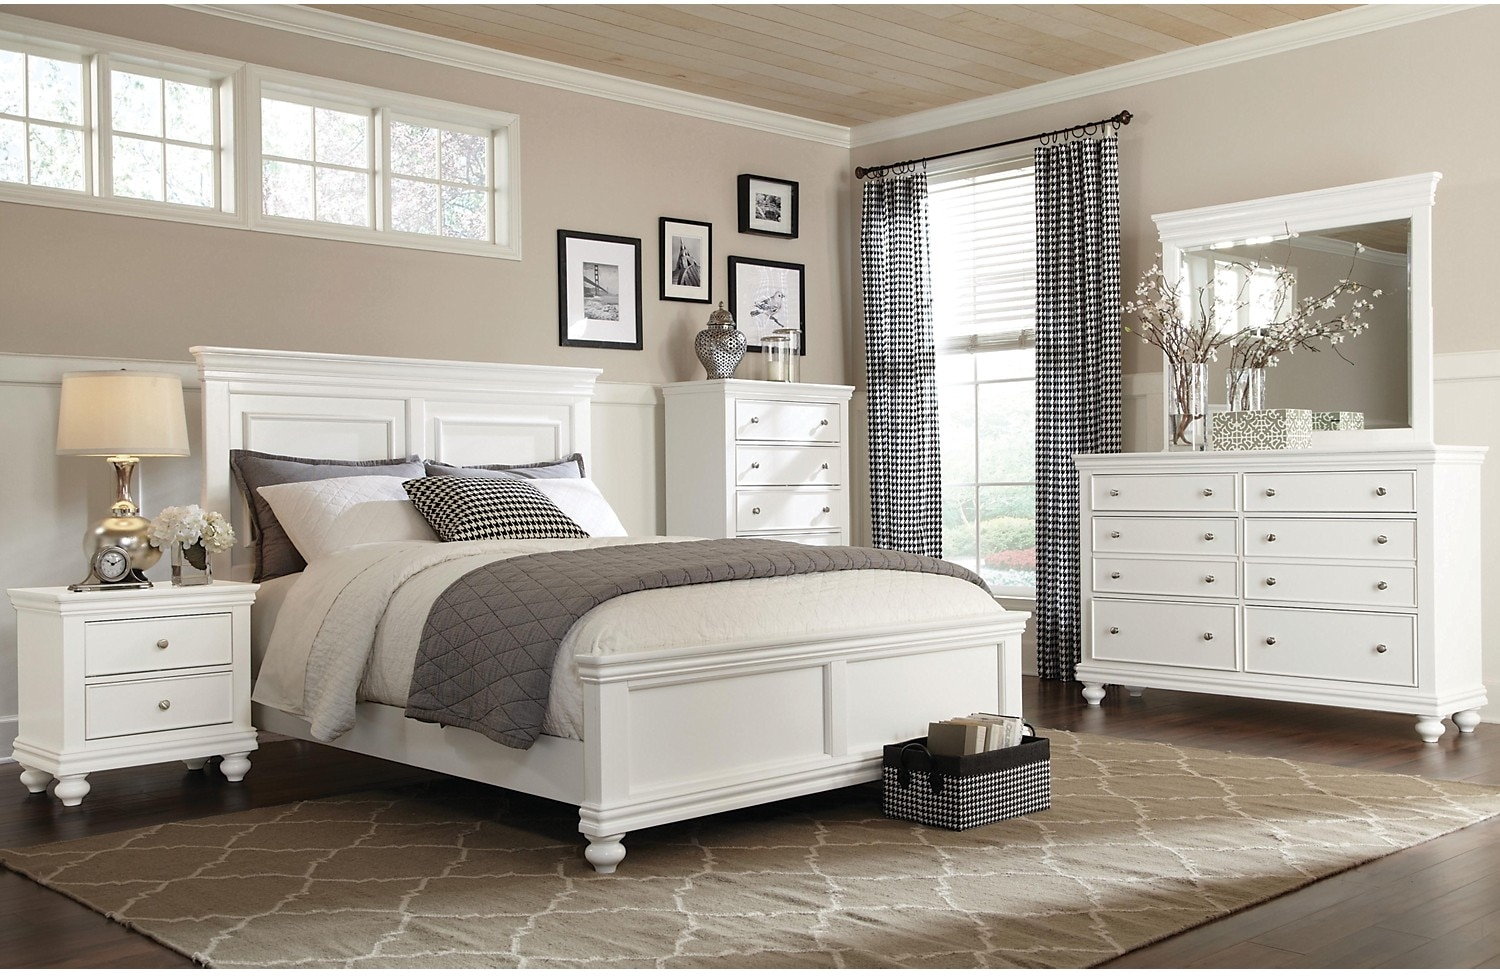 bridgeport piece queen bedroom set – white  the brick -  queen bedroom set – white hover to zoom